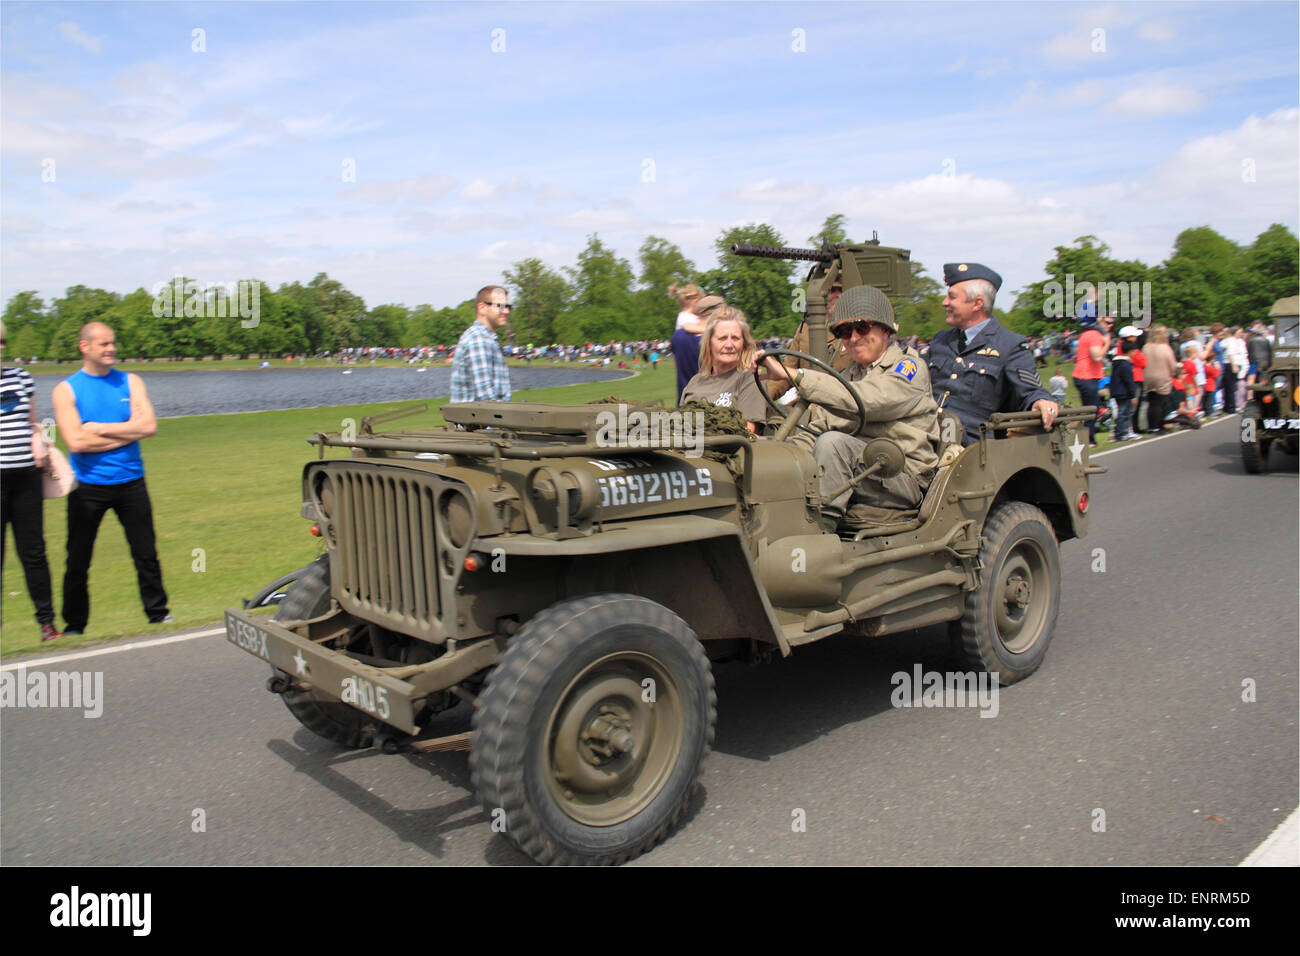 jeep willys photos jeep willys images alamy. Black Bedroom Furniture Sets. Home Design Ideas